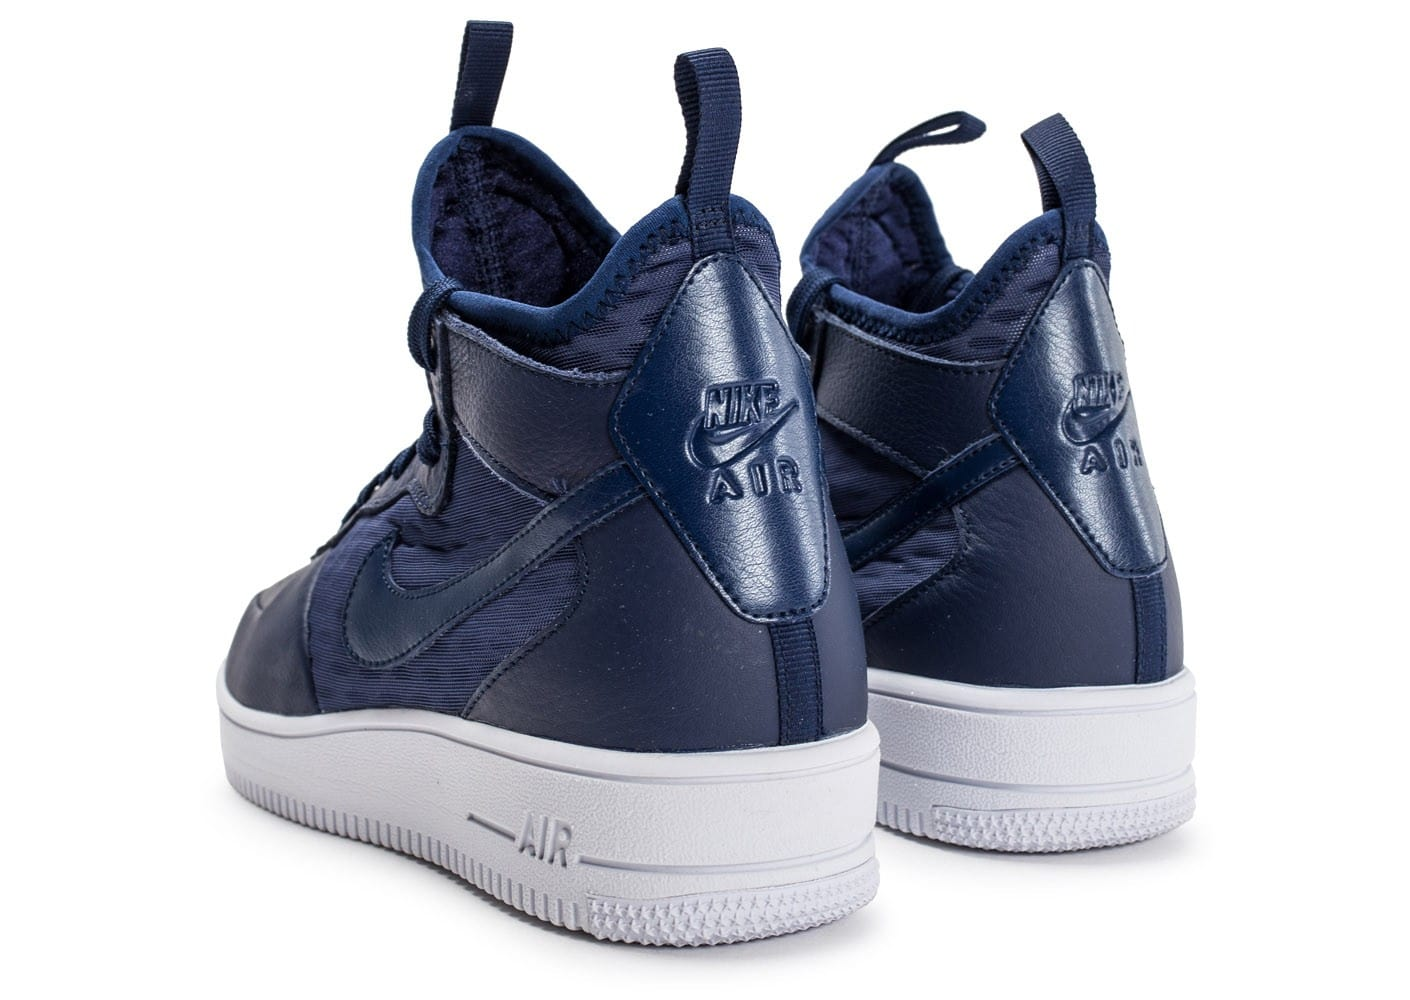 Force Ultraforce 1 Air Bleue Baskets Mid Homme Nike Chaussures Yf6y7vbg